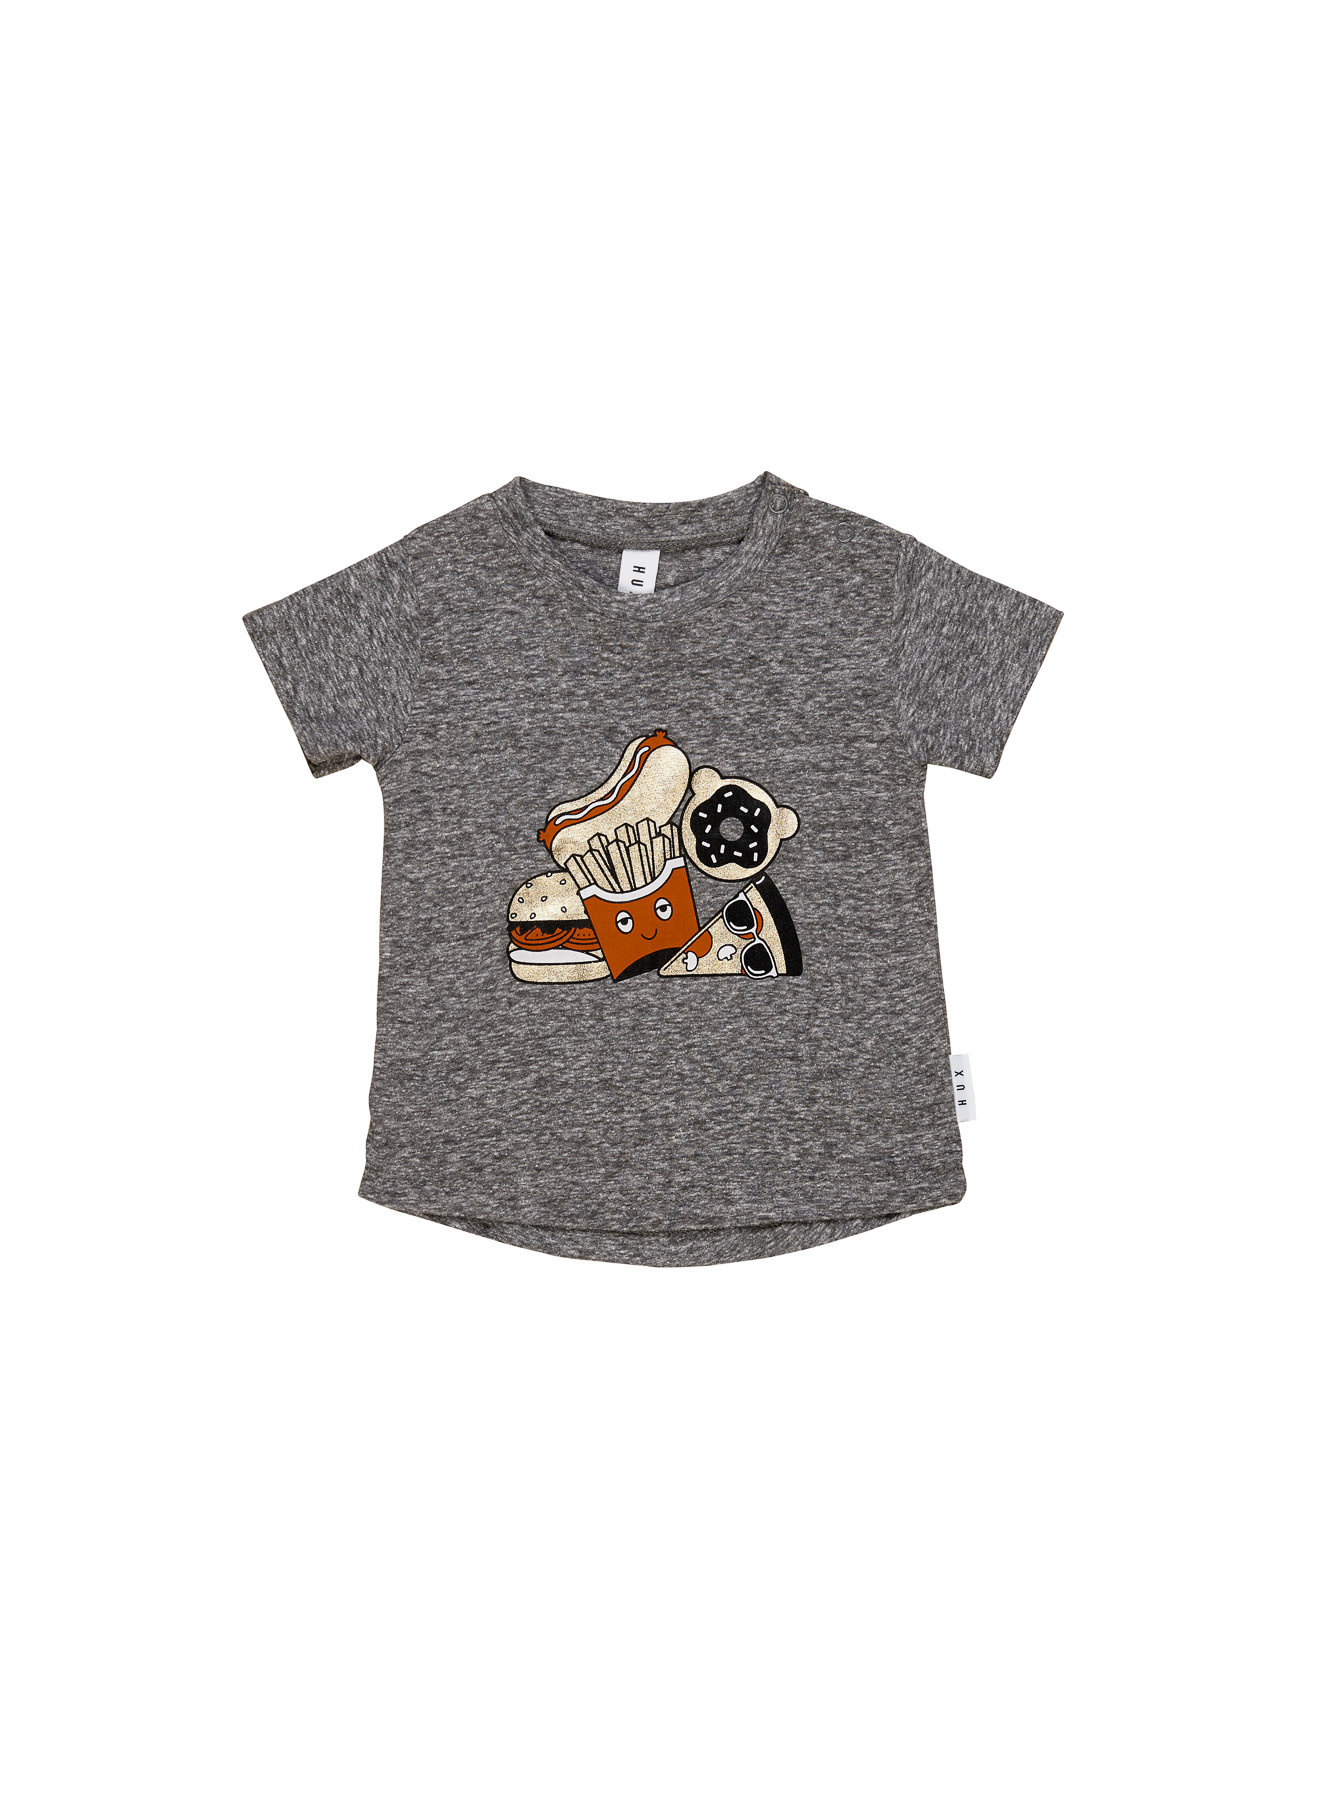 HUX BABY Gold Food T-Shirt